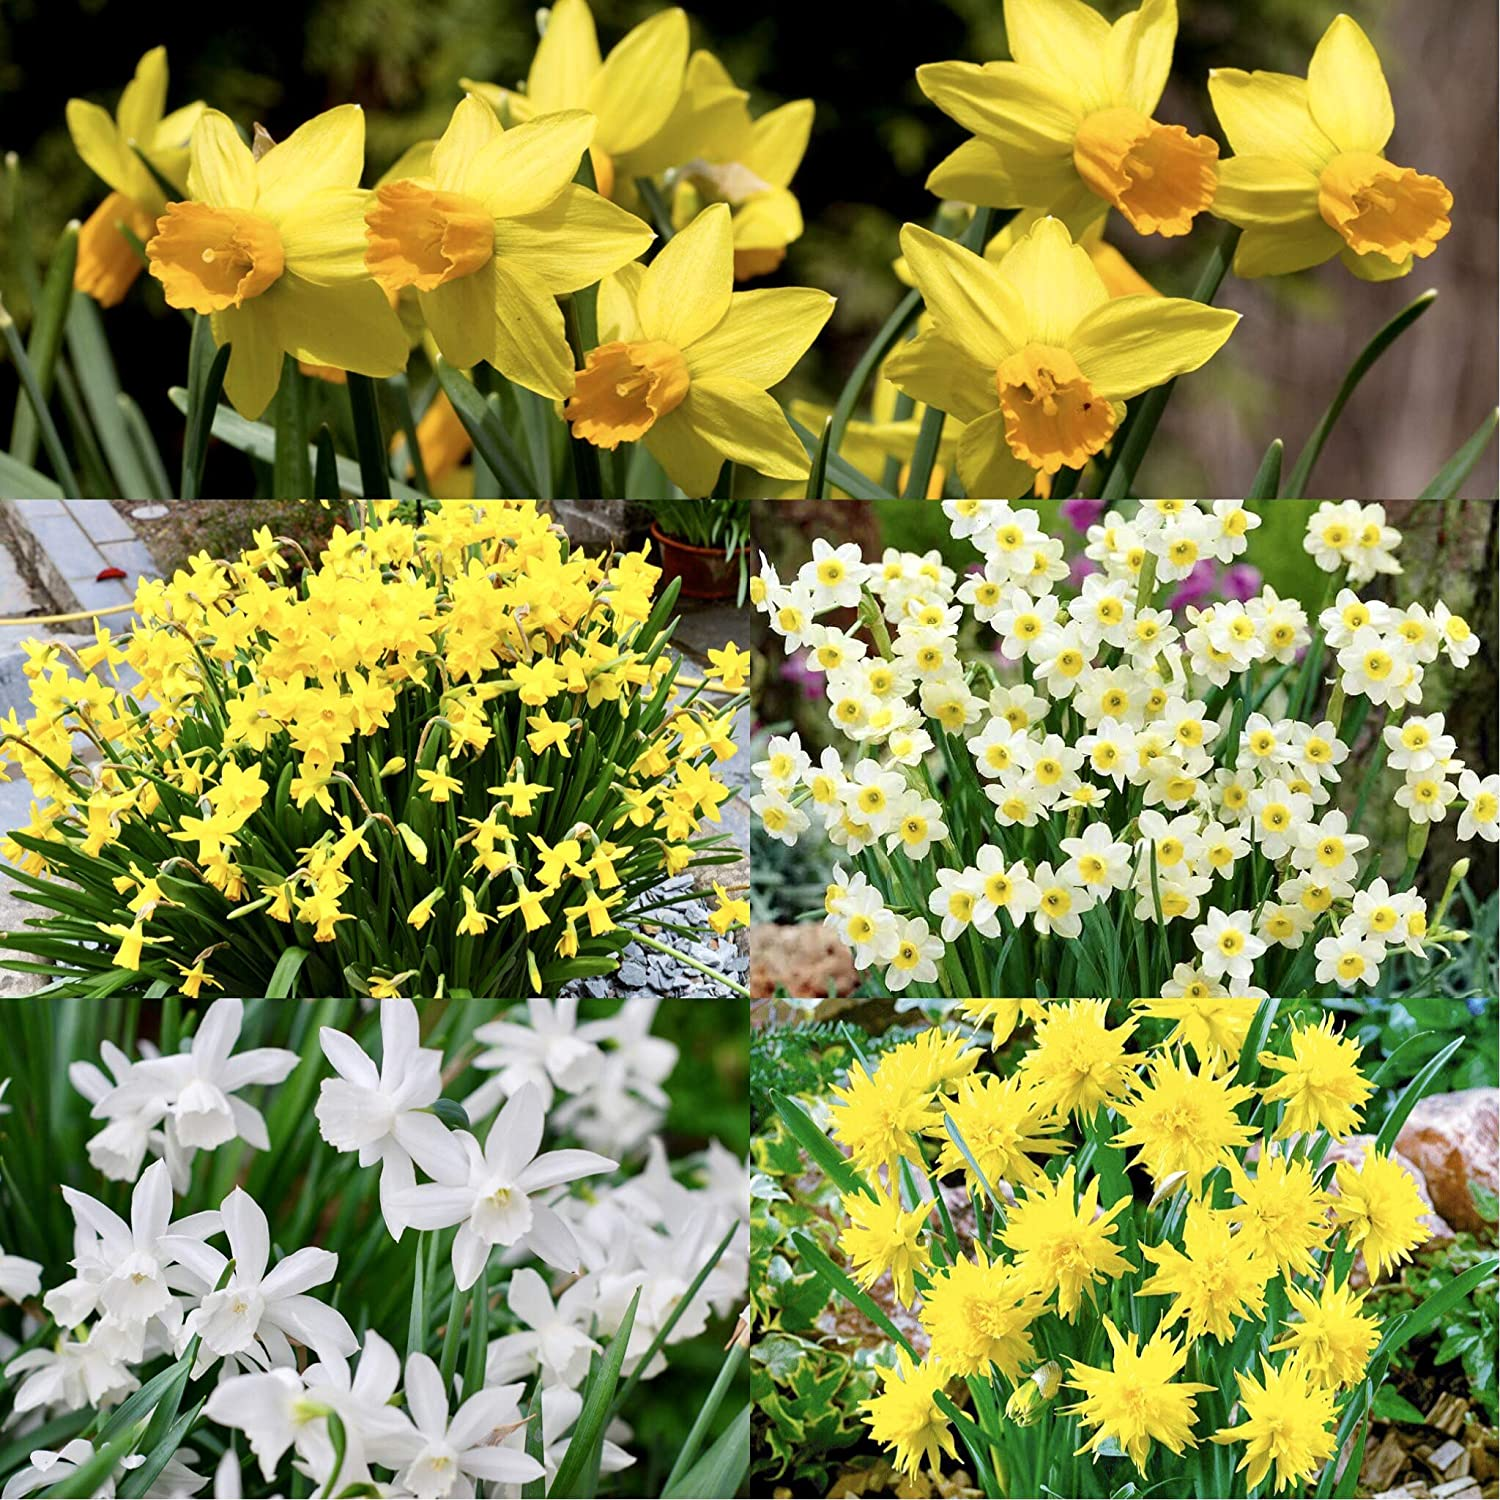 by Woodland bulbs/® 100 x Mixed Daffodils Bulbs /'Dwarf Rockery Miniature Narcissus /' 5 Varieties Including Tete a Tete Free UK P/&P Spring Flowering Bulbs Ready to Plant